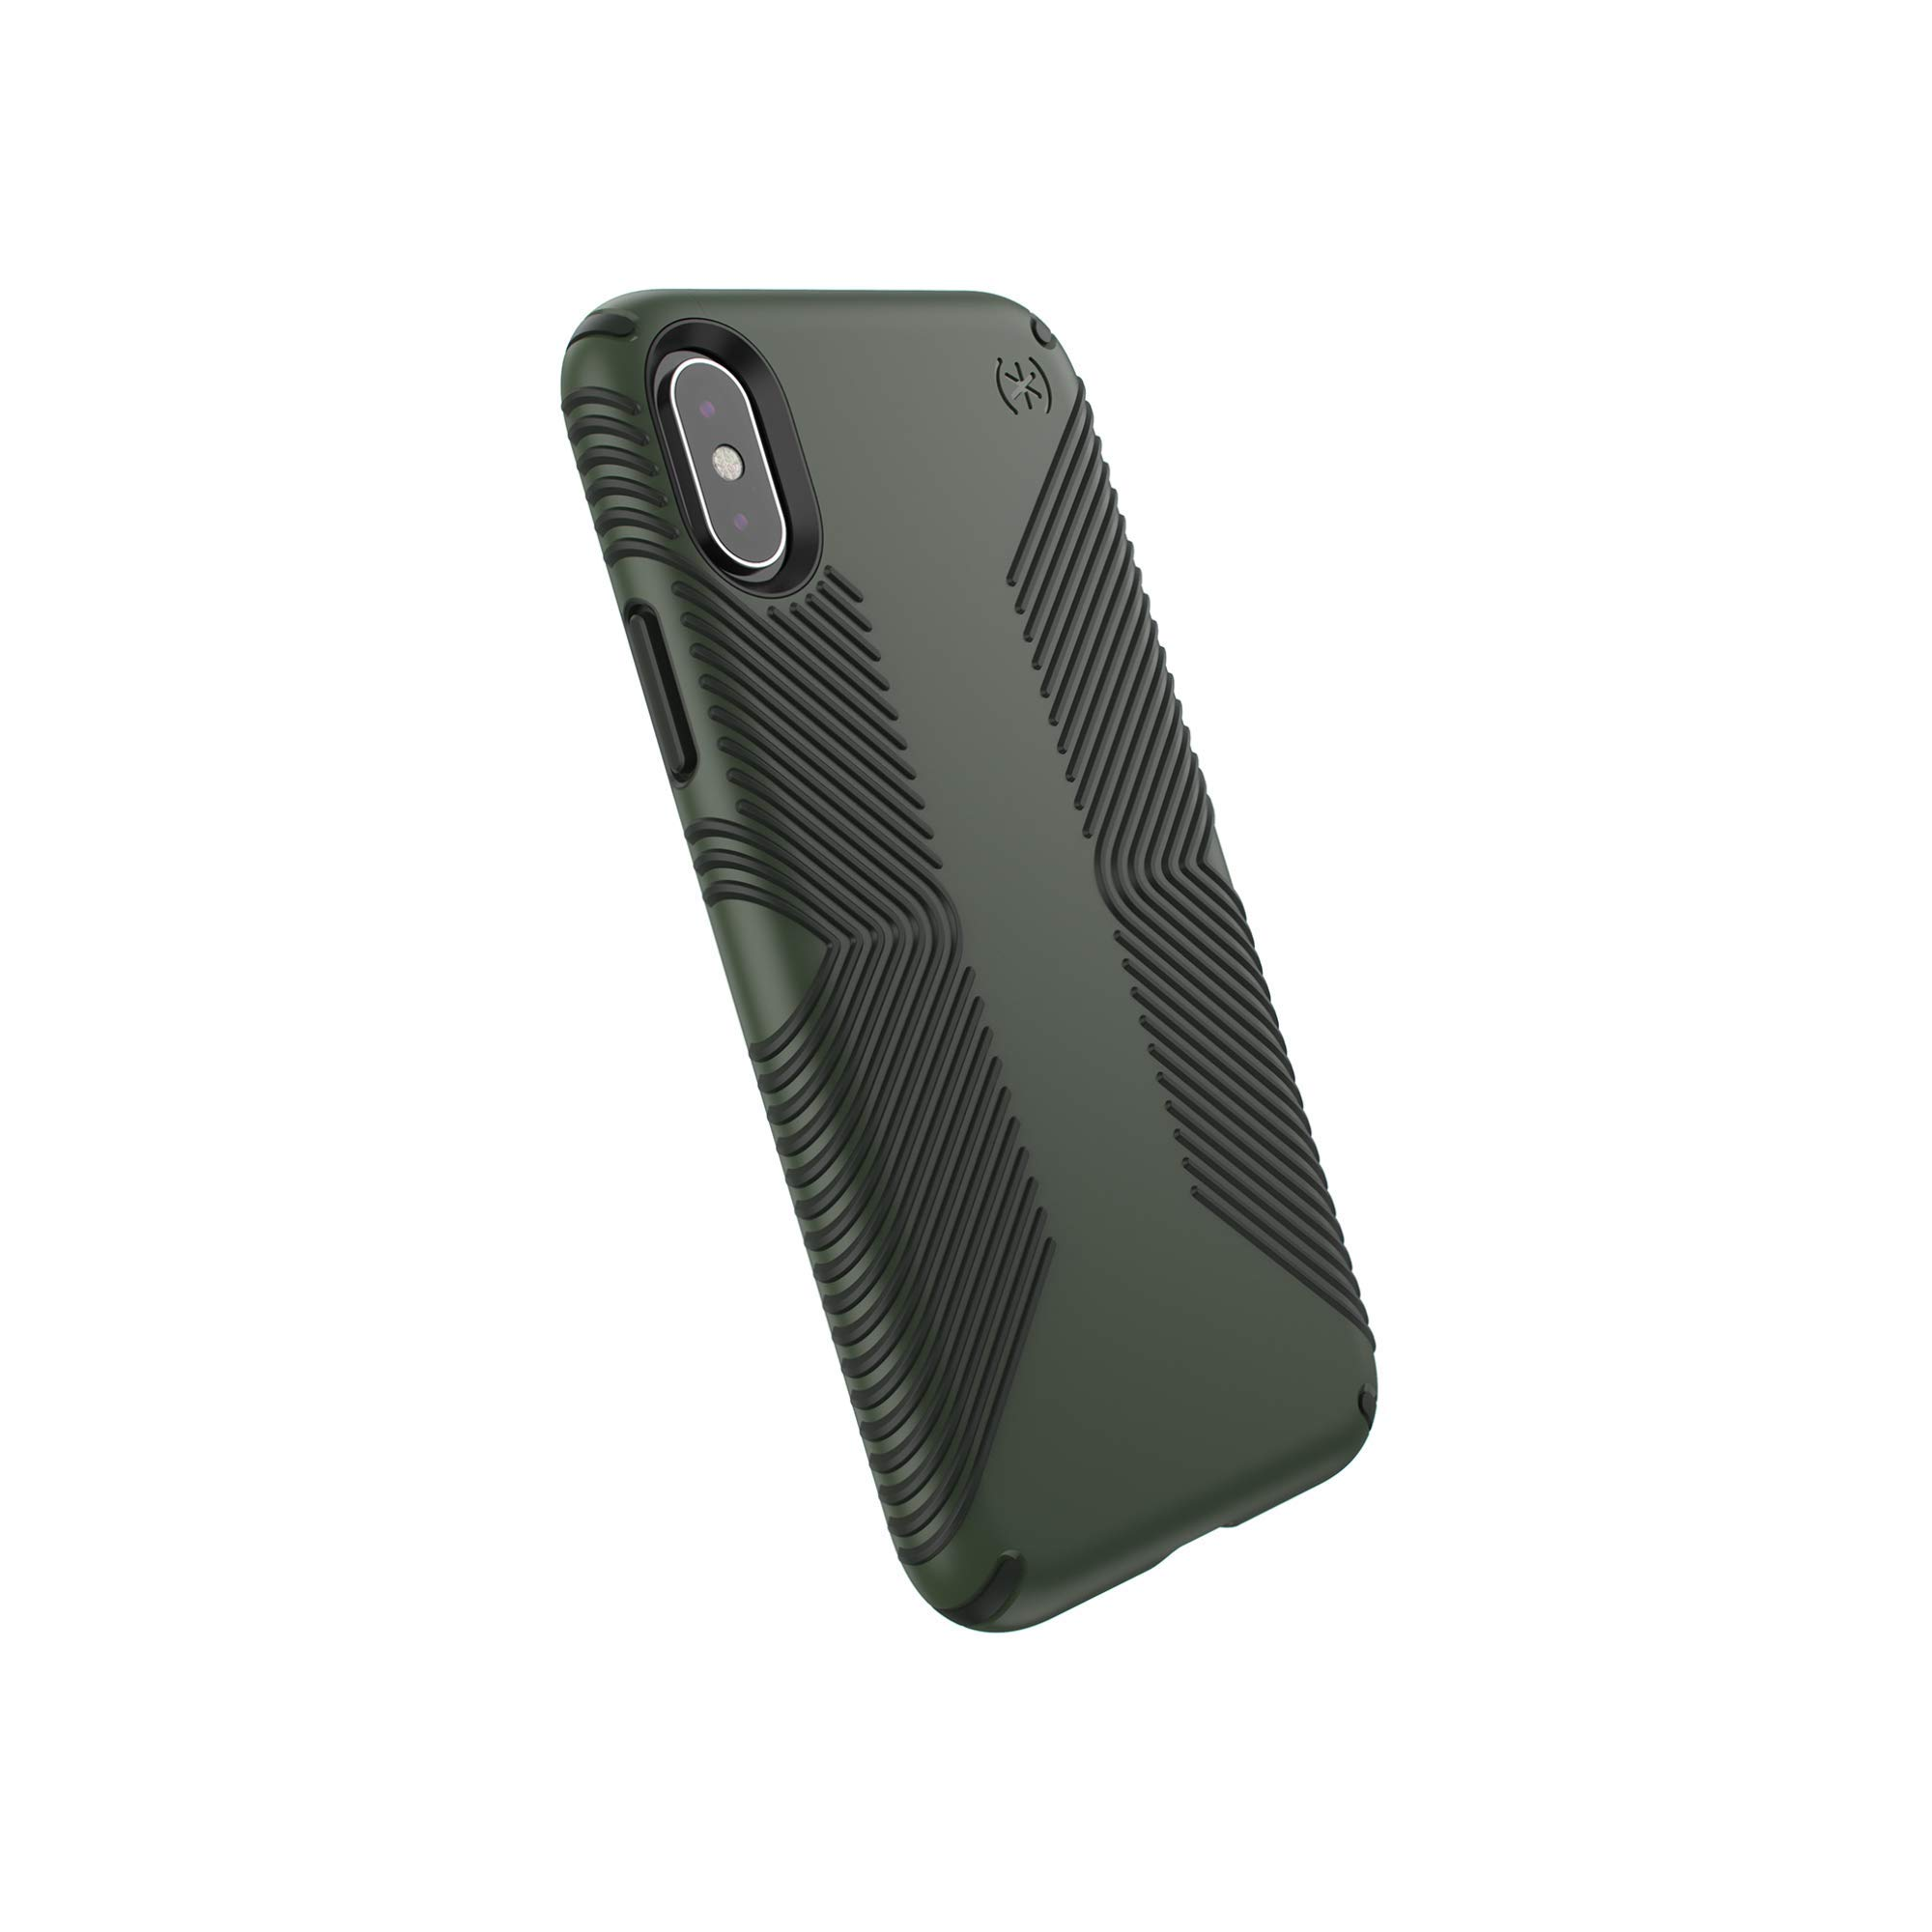 Speck Presidio Grip Series Case for Apple iPhone XS and X - Dusty Green/Black by Speck